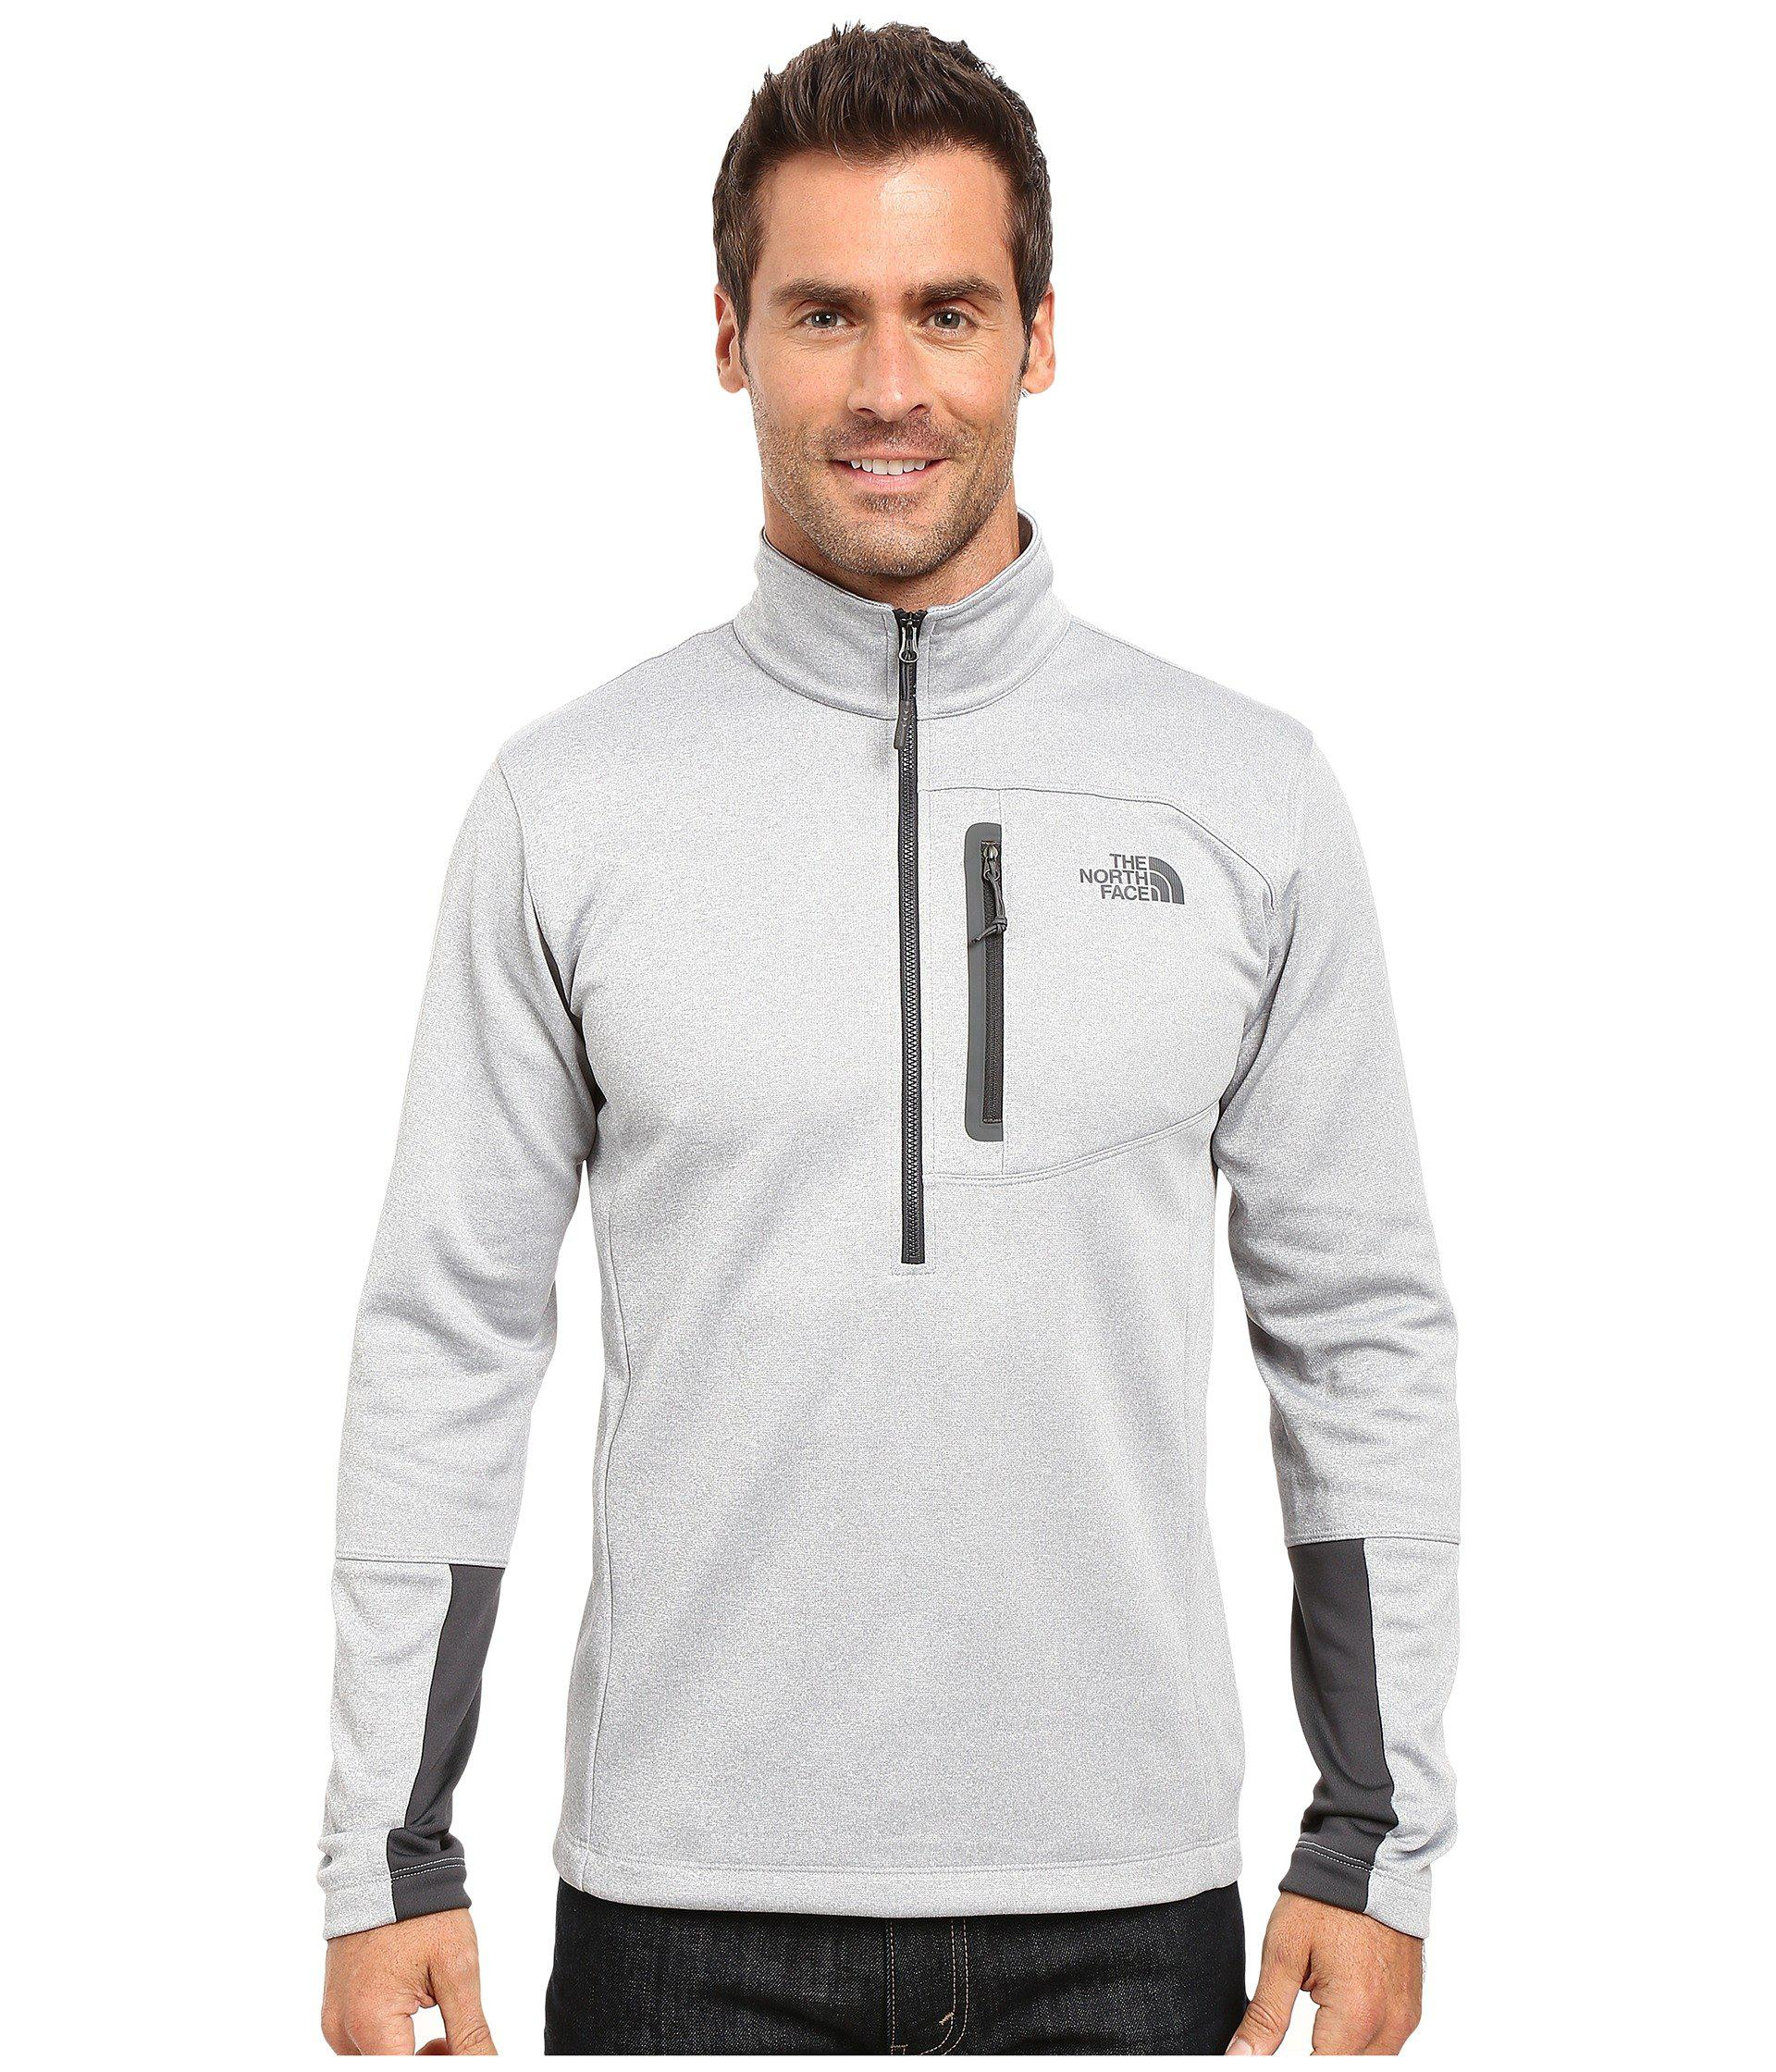 5b8f5c7a6 Lyst - The North Face Canyonlands 1/2 Zip Pullover in Gray for Men